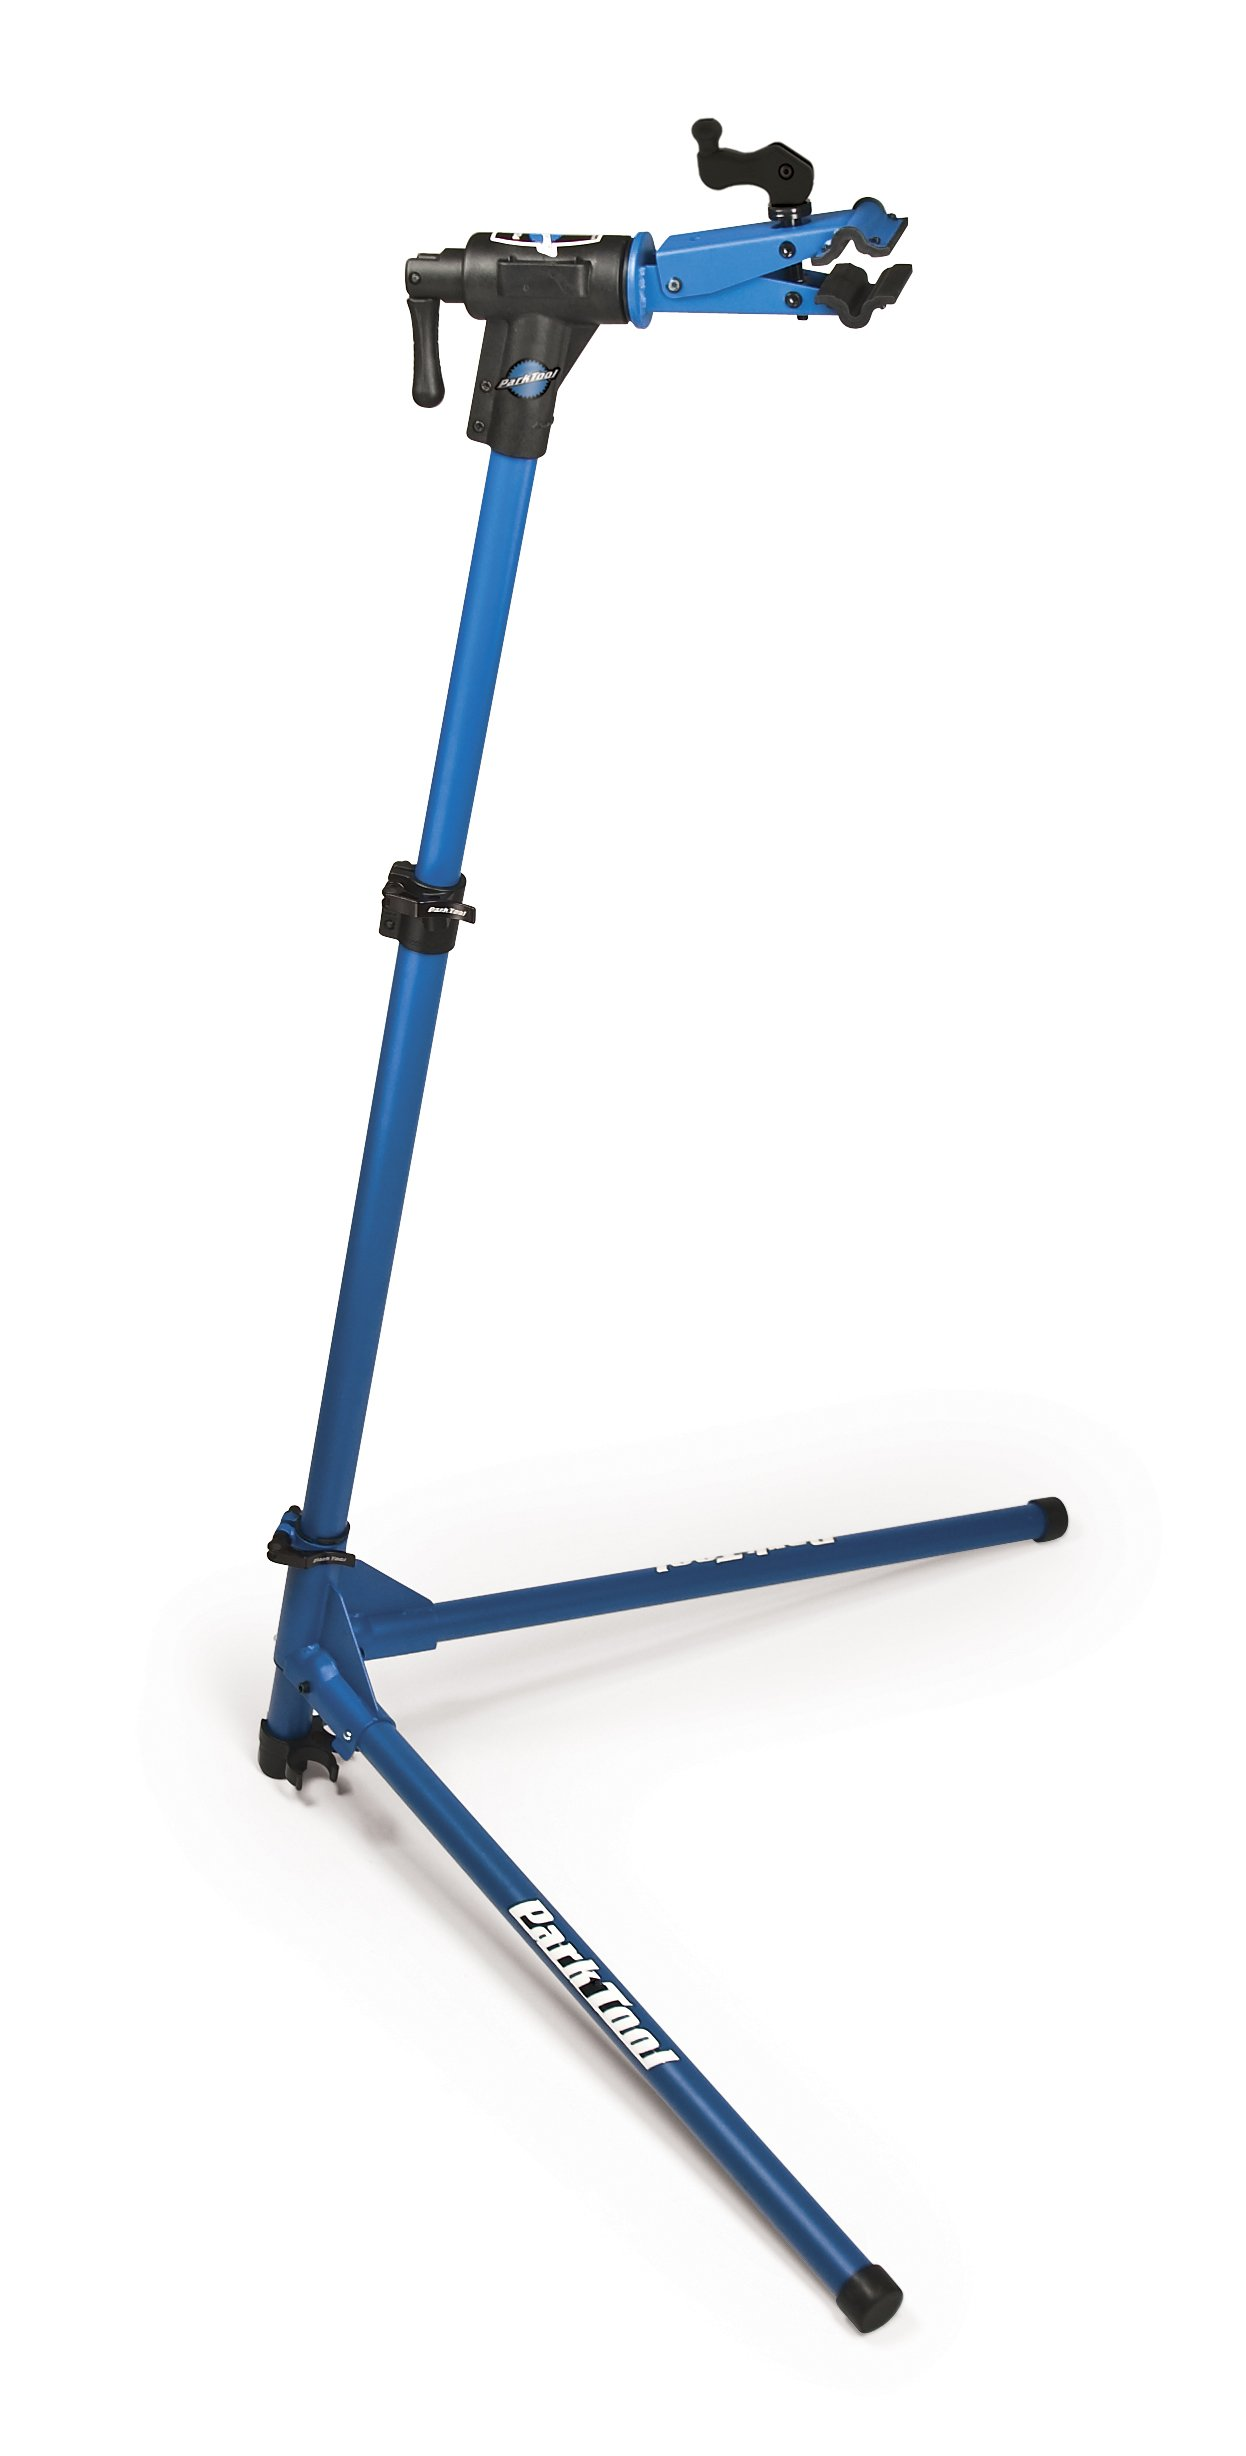 Park Tool PCS-10 Home Mechanic Repair Stand by Park Tool